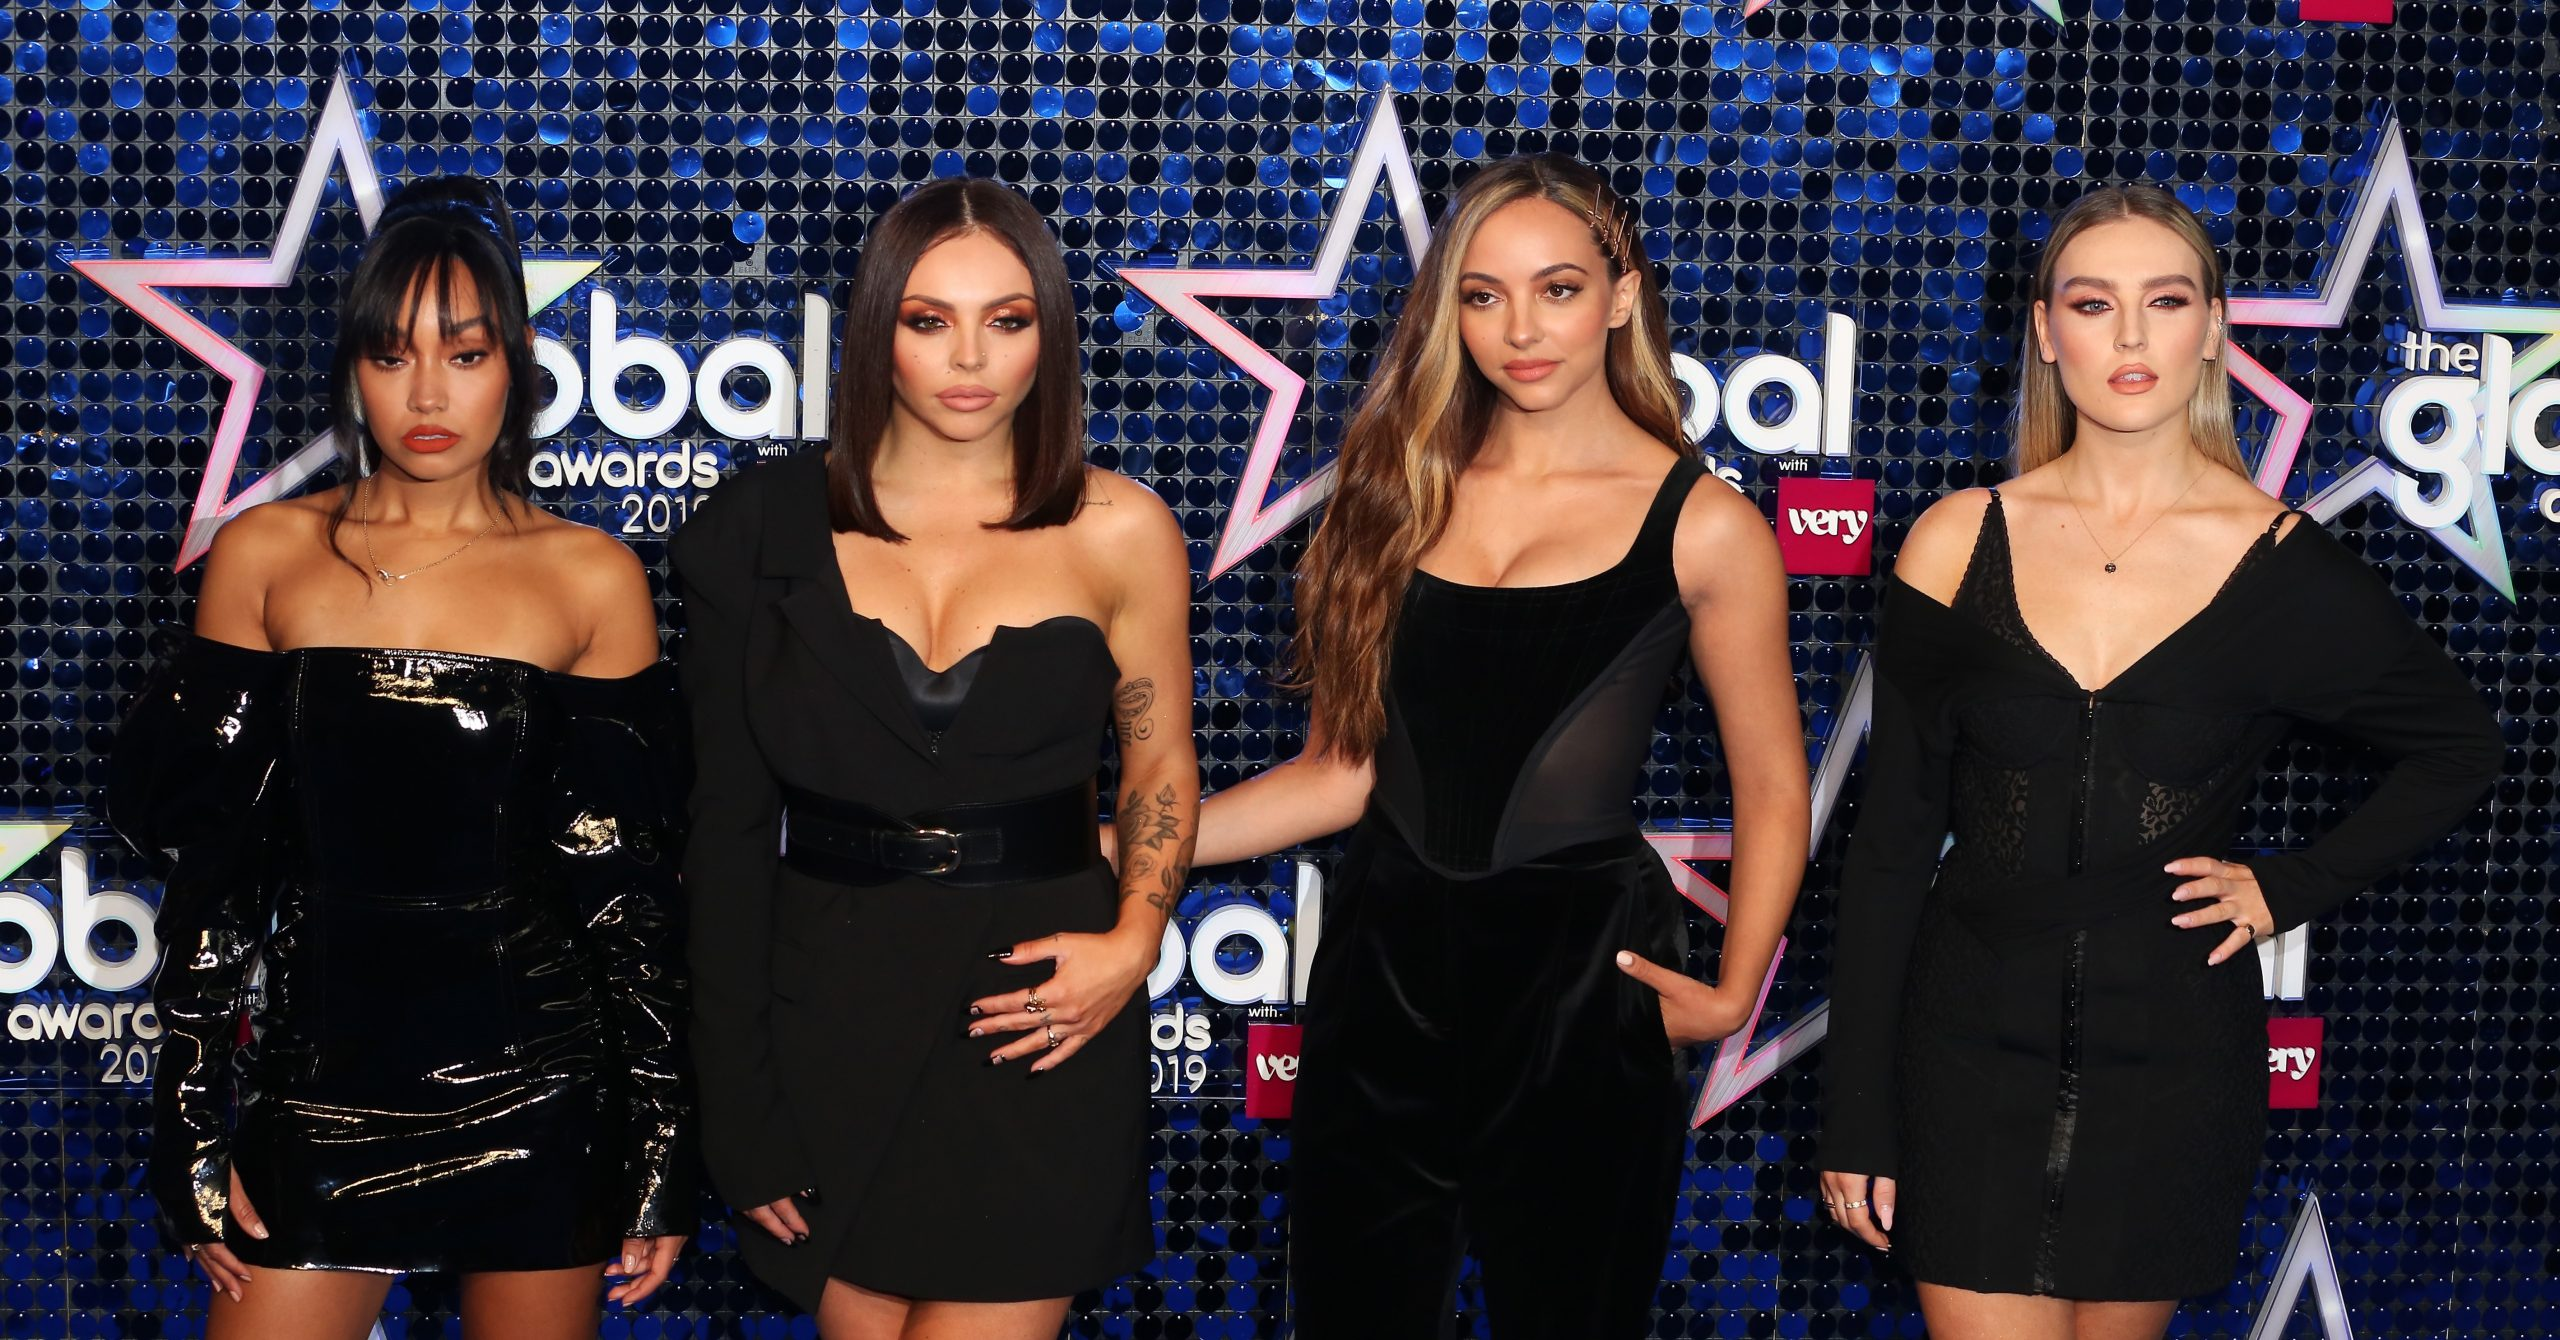 Little Mix's Jade Thirlwall says split from Simon Cowell's record label 'screwed them over'